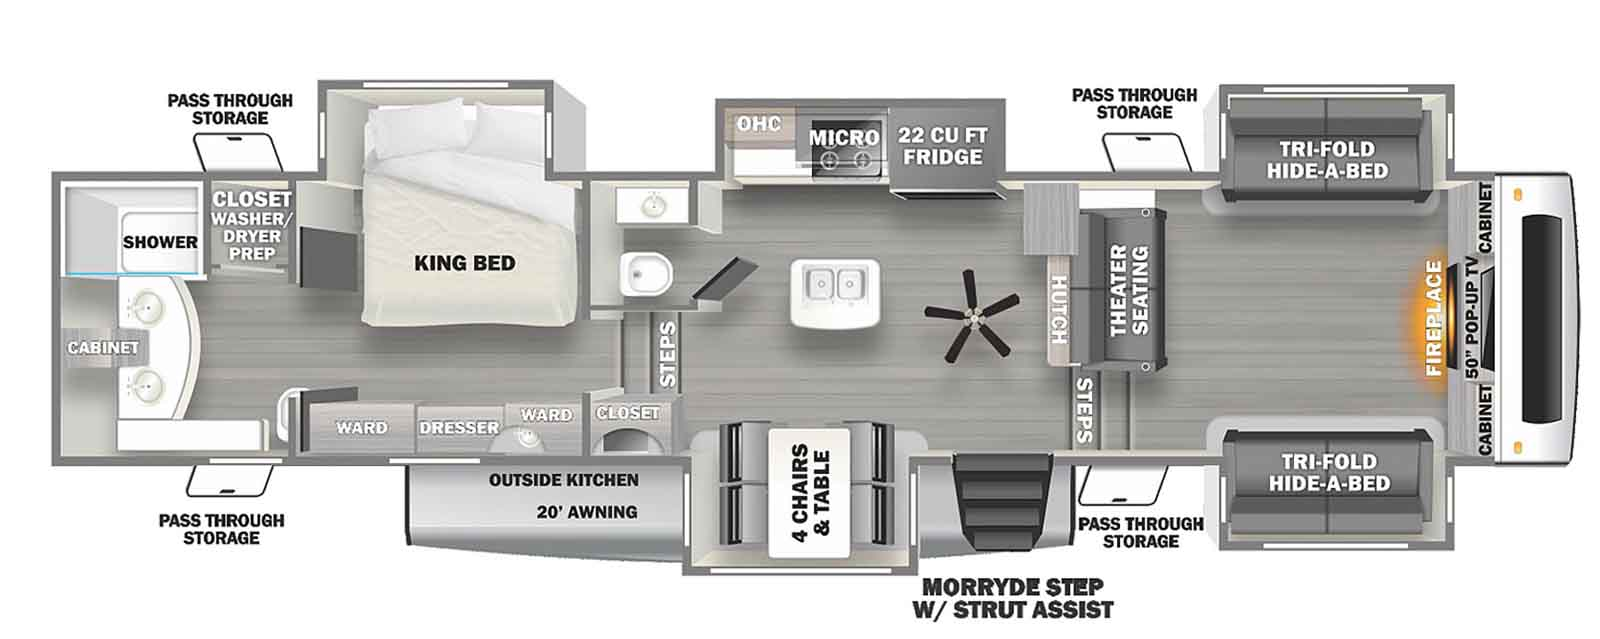 Layout For Bathroom Dimensions Rv Inverter Chinook Concourse Floor Plan Total Length 21 Feet About 1 3 Cockpit 1 3 Living 1 3 Bath And Kitchen Very Agile Pa Rv Floor